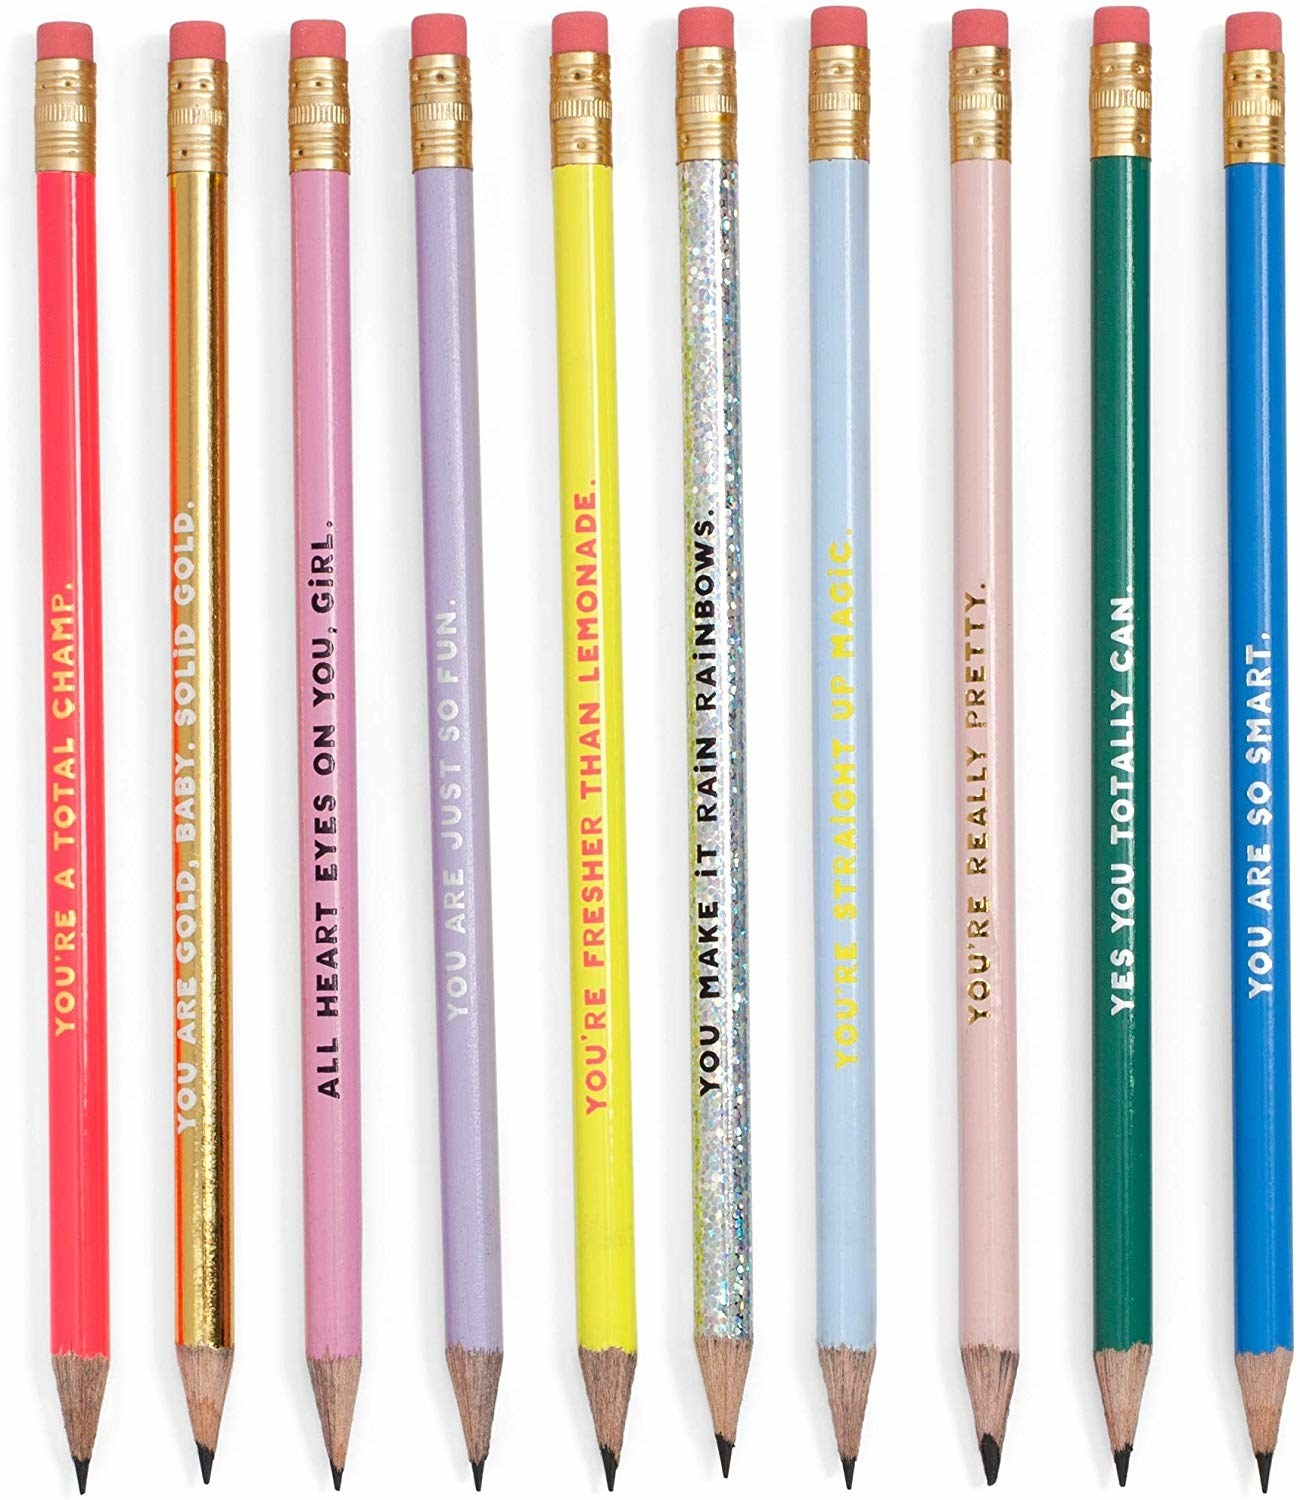 A set of ten sharpened pencils with quotes written on them